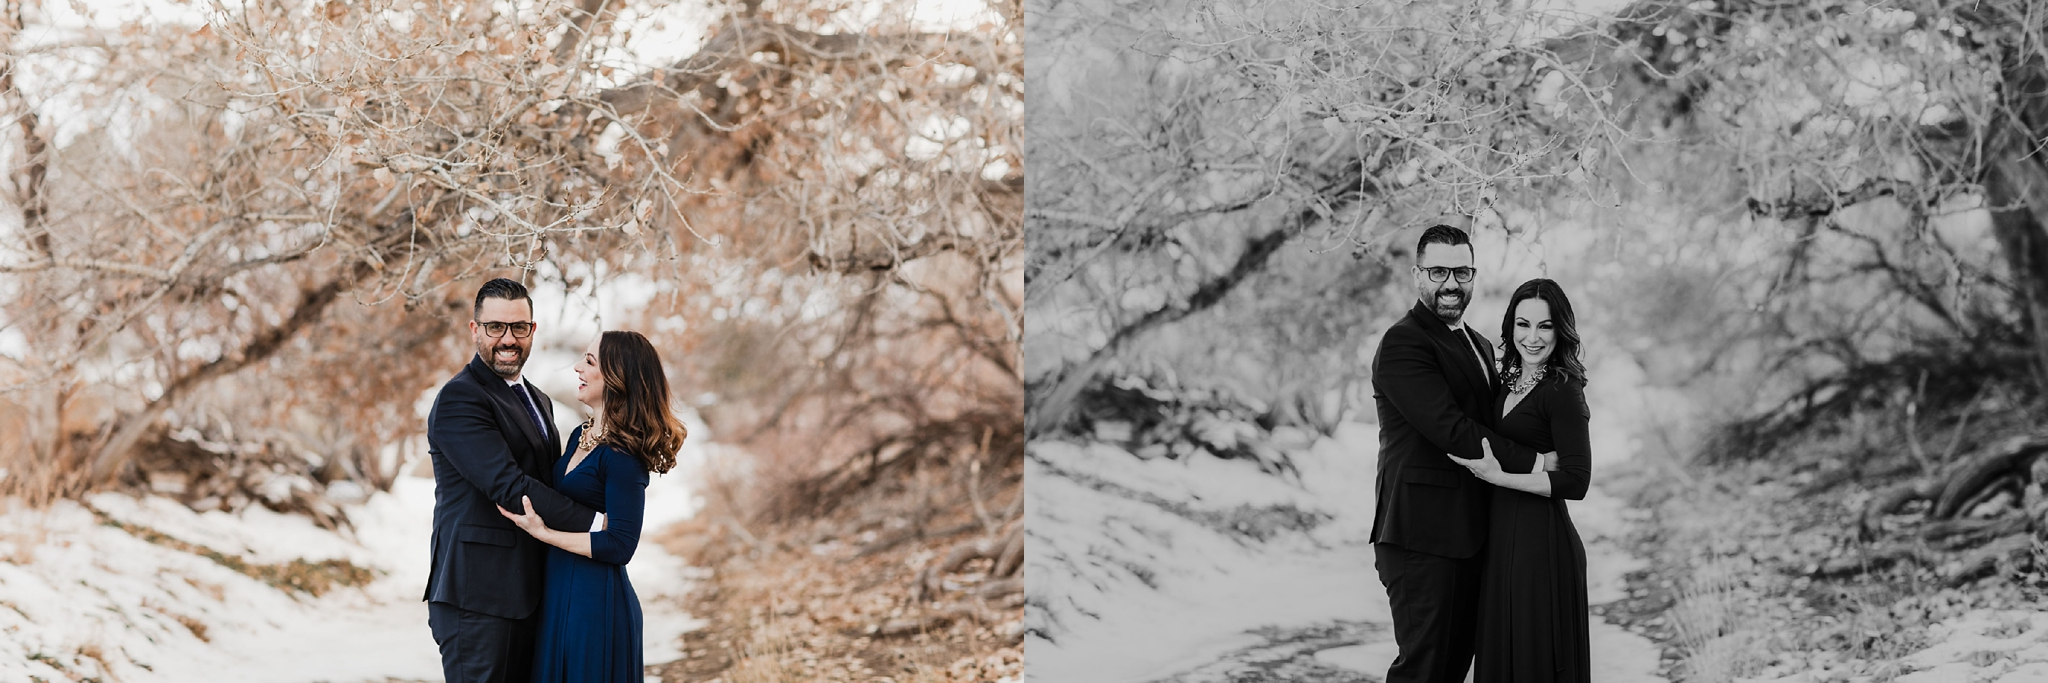 Alicia+lucia+photography+-+albuquerque+wedding+photographer+-+santa+fe+wedding+photography+-+new+mexico+wedding+photographer+-+new+mexico+wedding+-+engagement+-+winter+engagement+-+albuquerque+engagement_0002.jpg